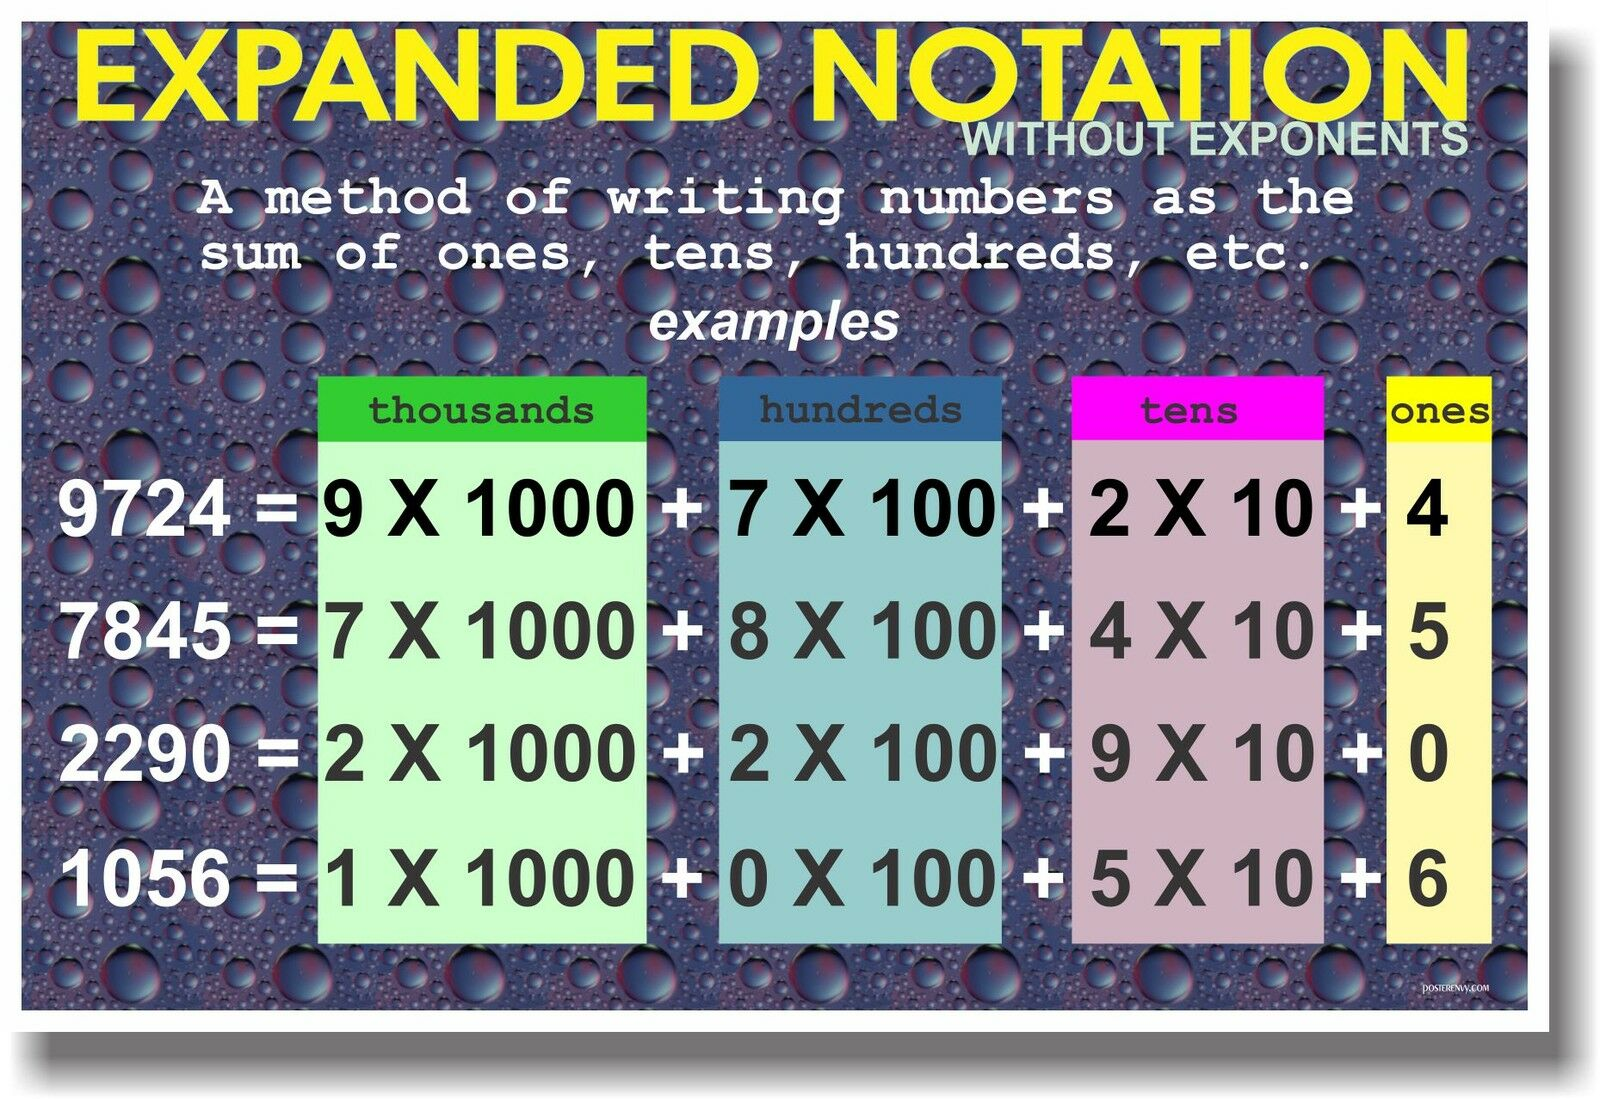 worksheet Expanded Notation new poster expanded notation educational school classroom math notation